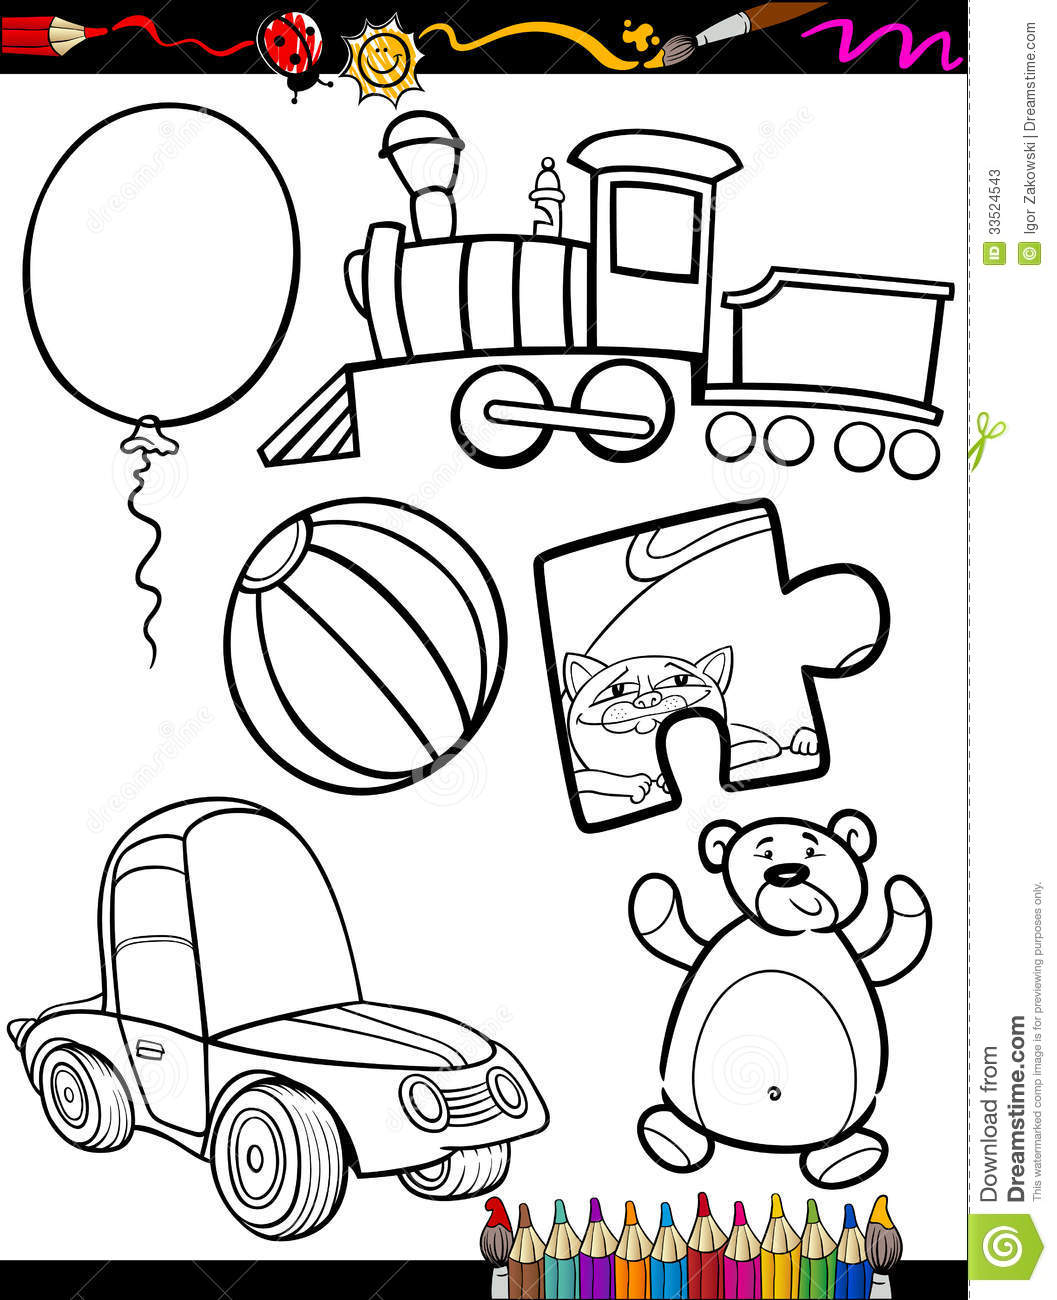 cartoon toys objects coloring page stock photos image 33524543